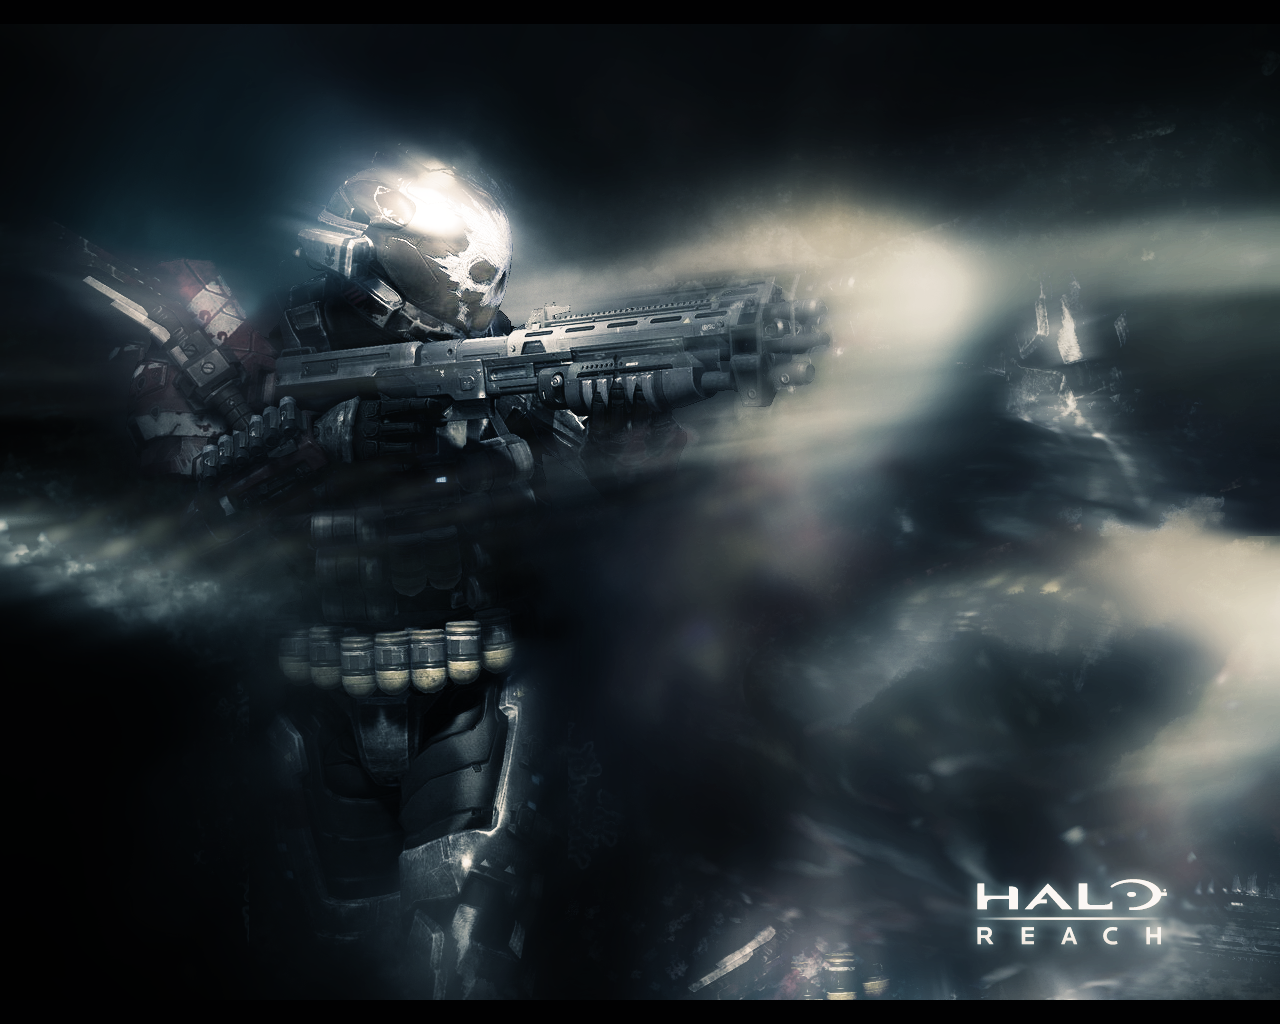 Free Download Fuentes De Informacin Imagenes De Halo Reach